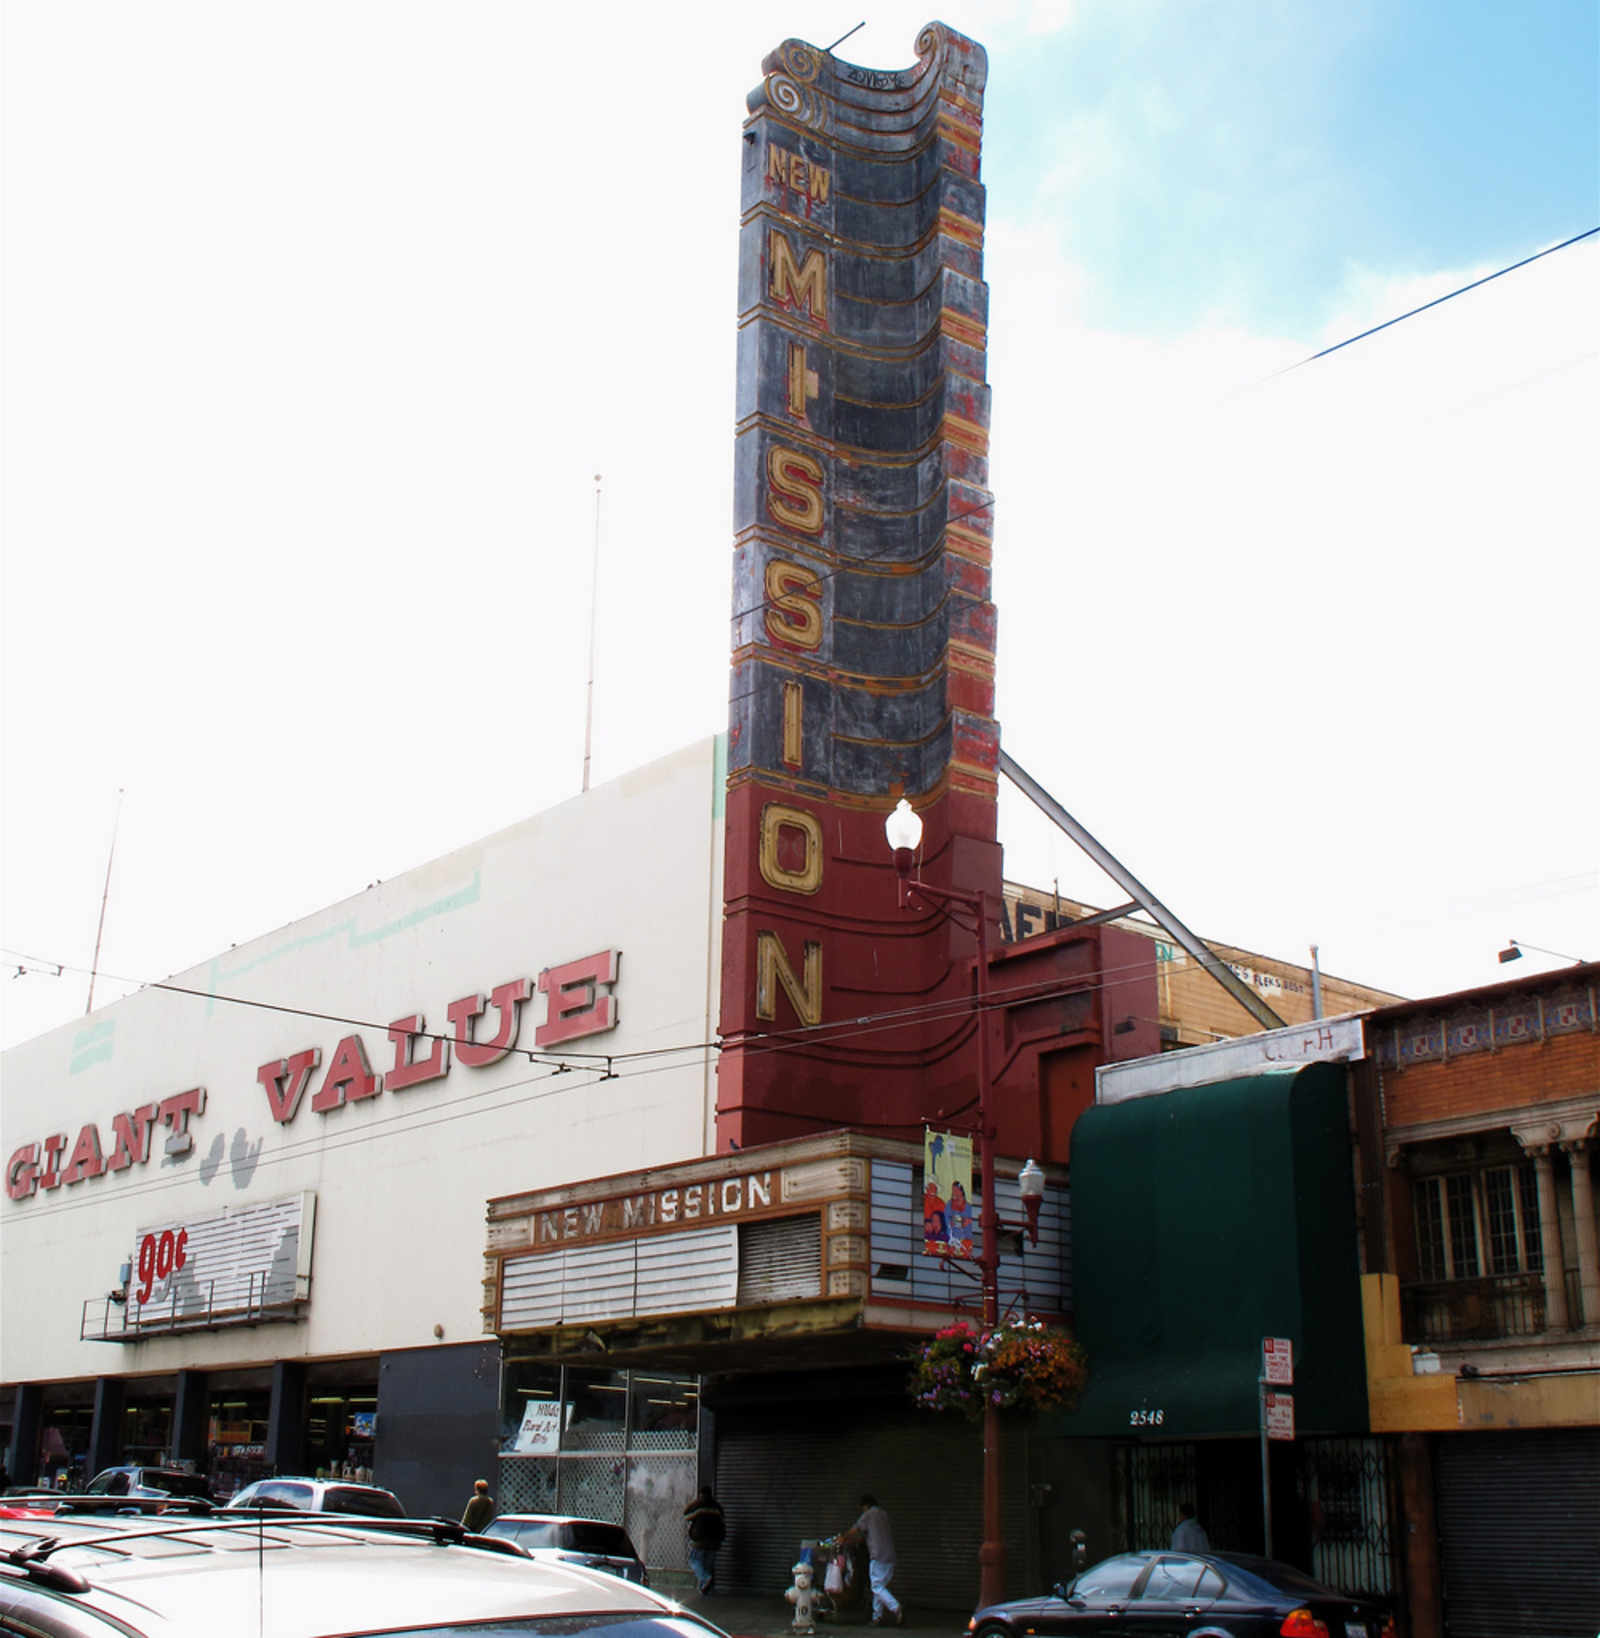 New Mission Theater to Become Five-Screen Cinema that Serves Beer